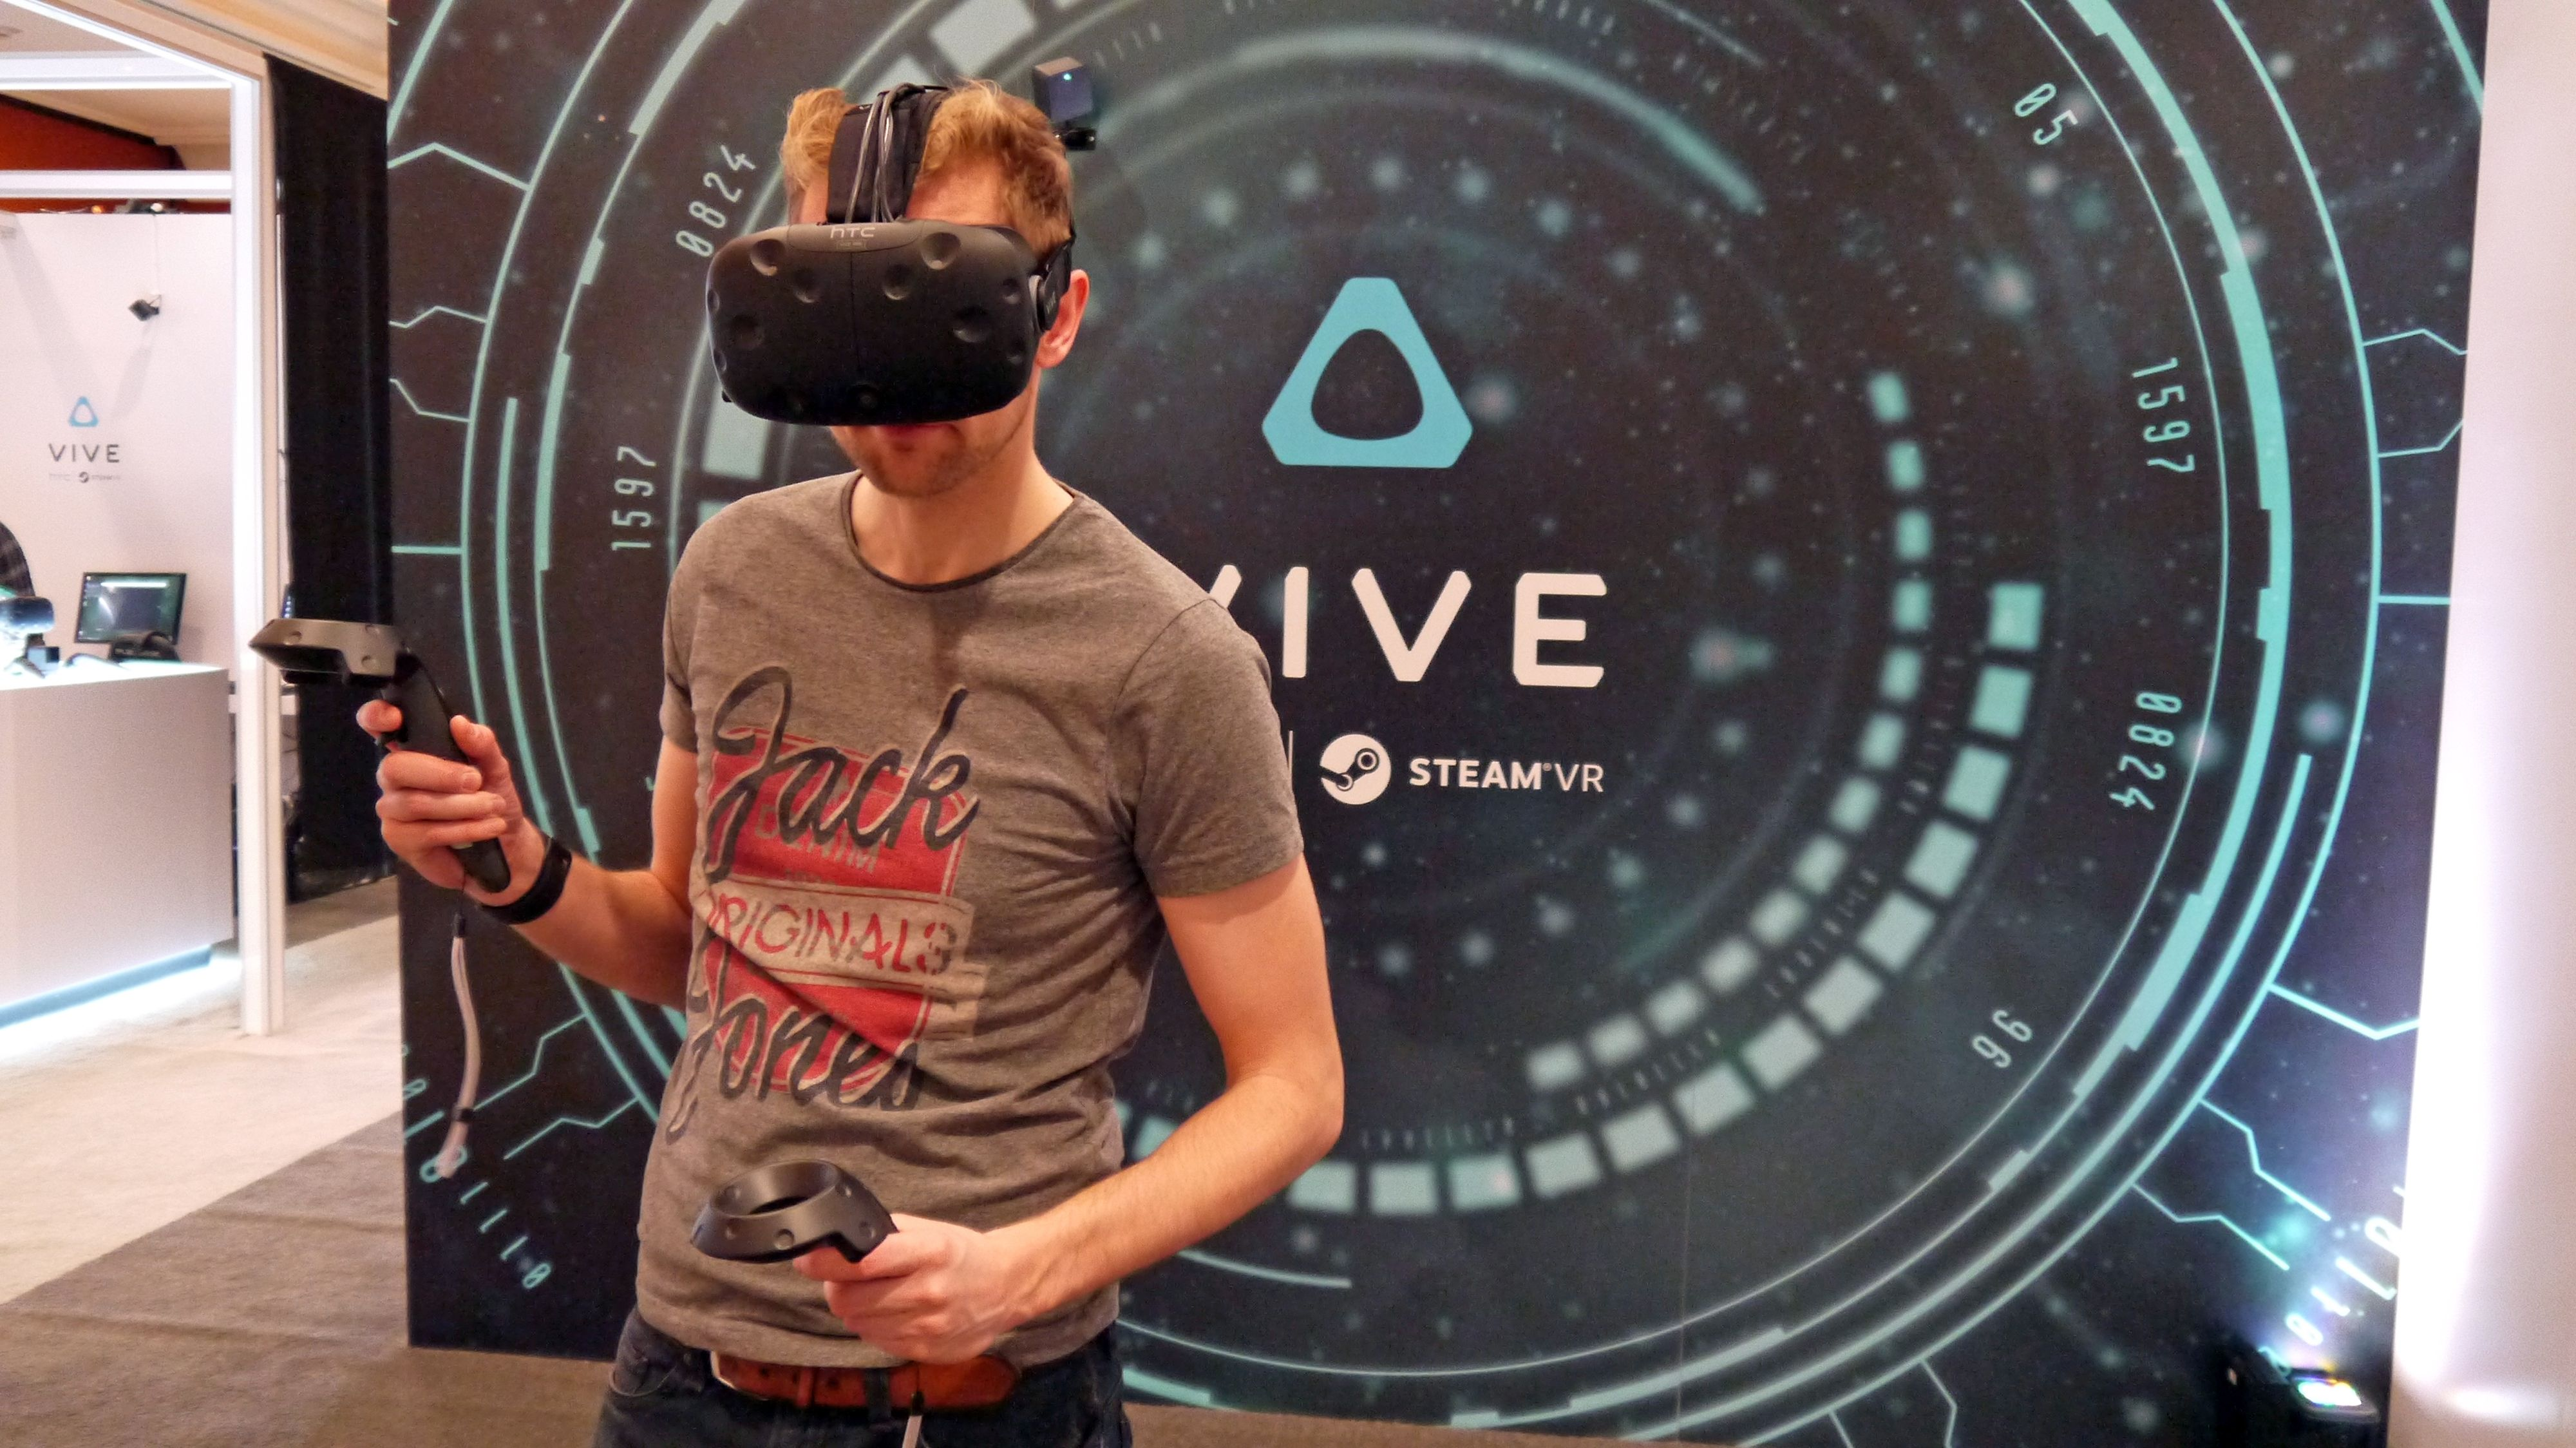 HTC Vive vs Oculus Rift: which VR headset is better